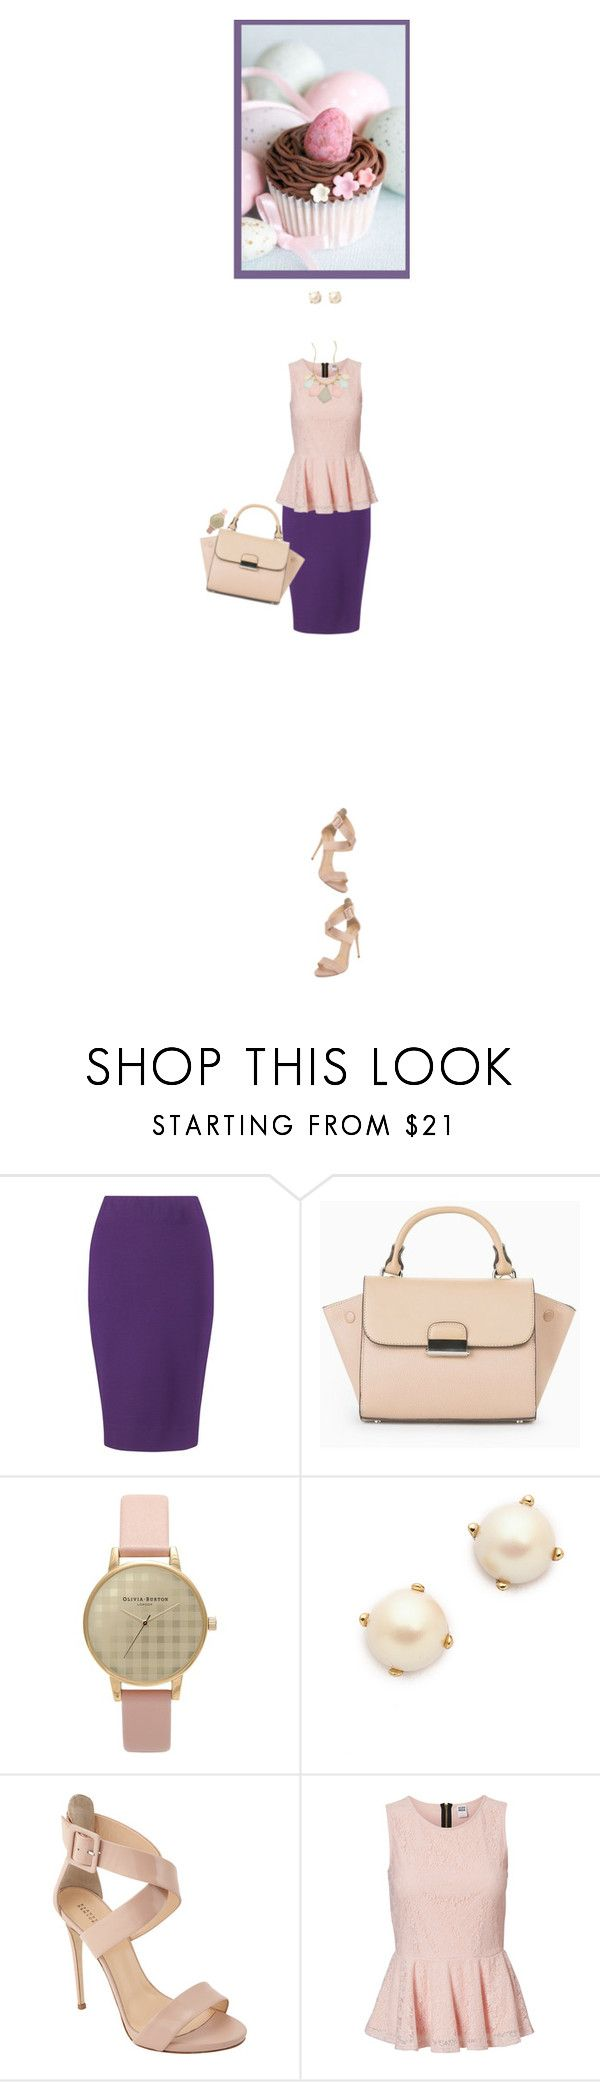 """Easter Surprise!"" by fashionbrownies ❤ liked on Polyvore featuring Winser London, MANGO, Olivia Burton, Kate Spade, Barneys New York, Vero Moda, Shlomit Ofir, Easter, SpringStyle and polyvoreeditorial"